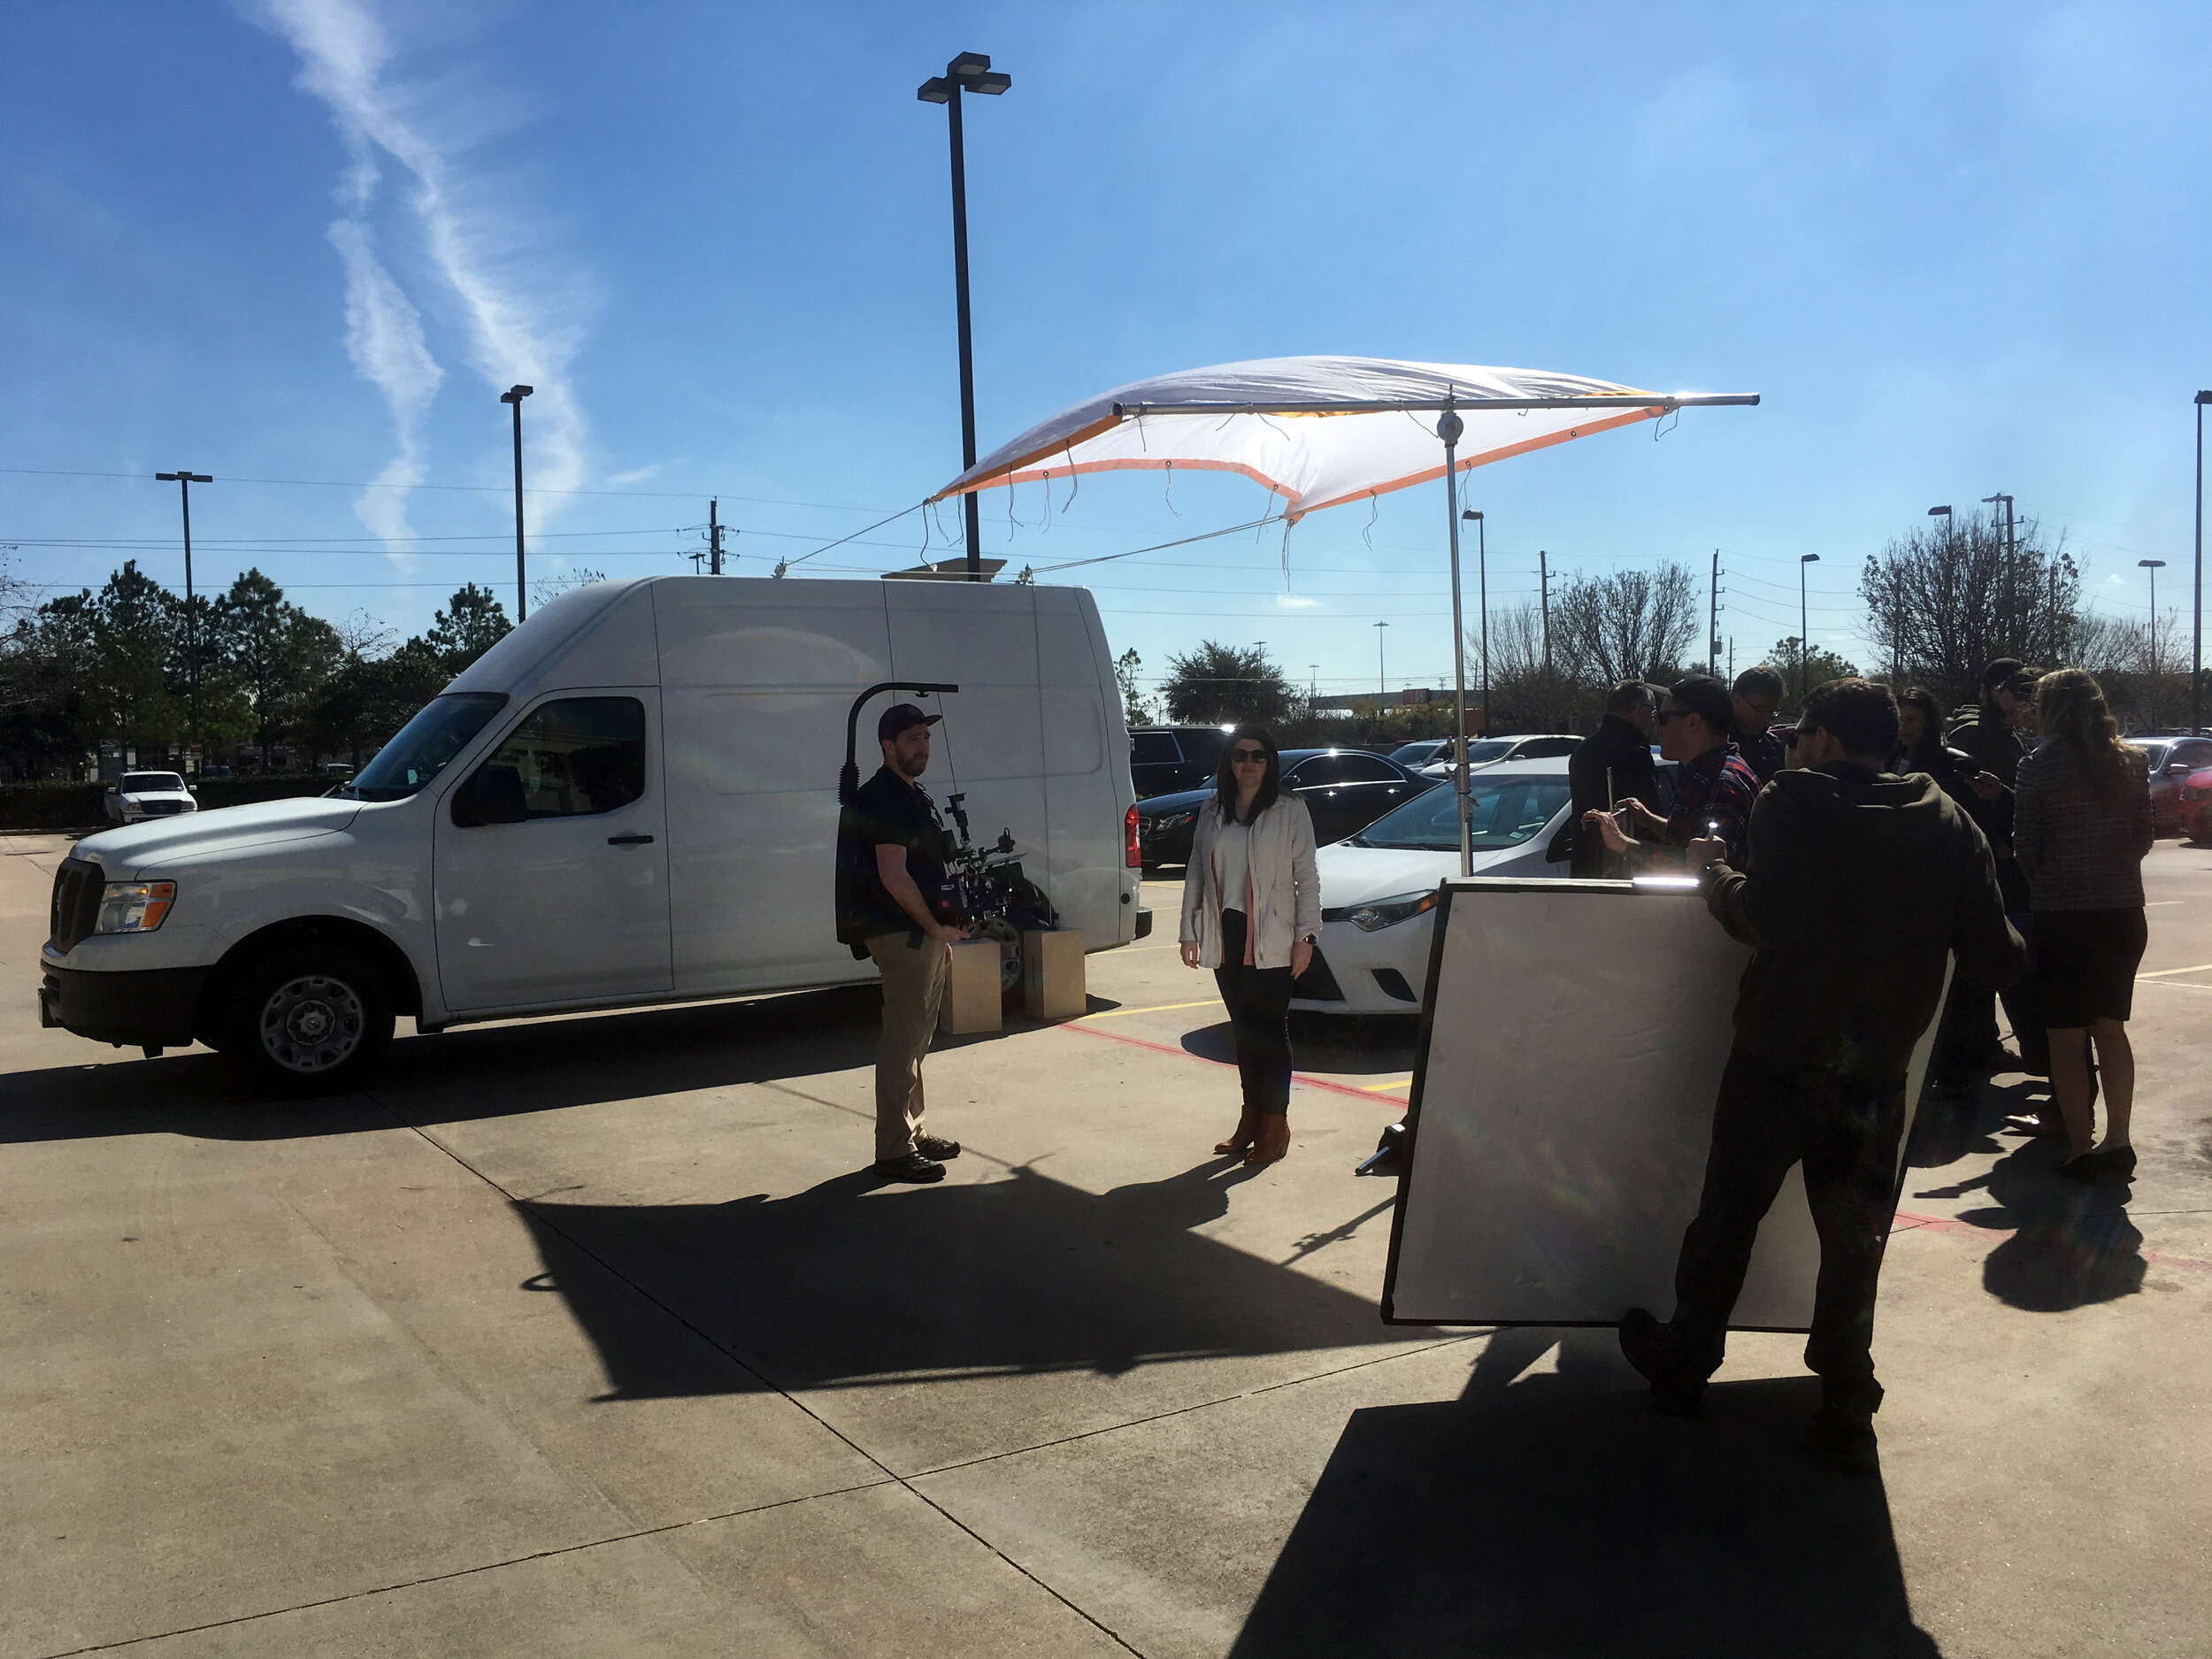 outdoor-filming-truck-athenahealth.jpg